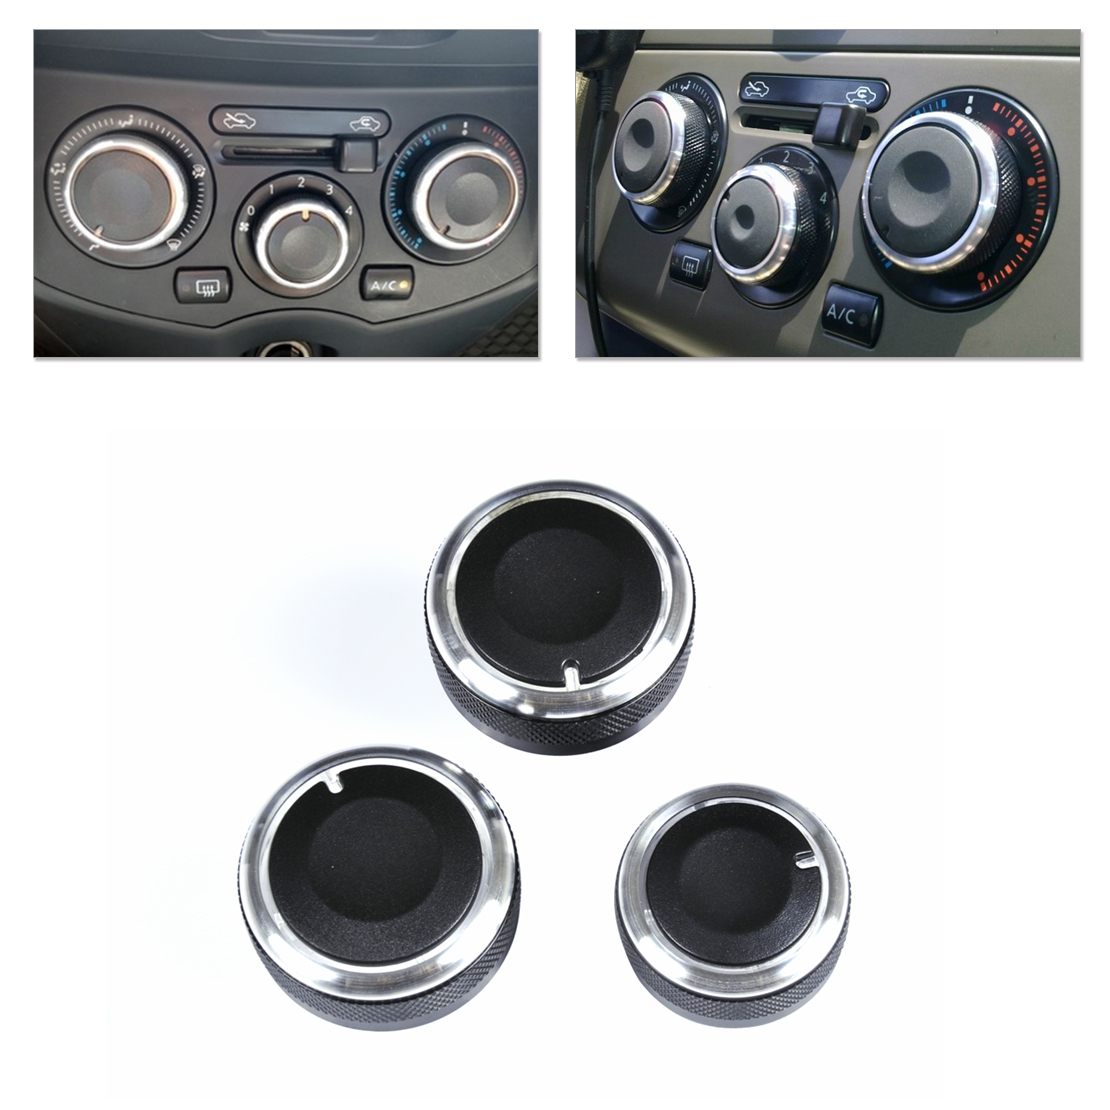 3 PCS Aluminum Alloy Air-Conditioning A//C Knobs Switch For Nissan LIVINA TIIDA